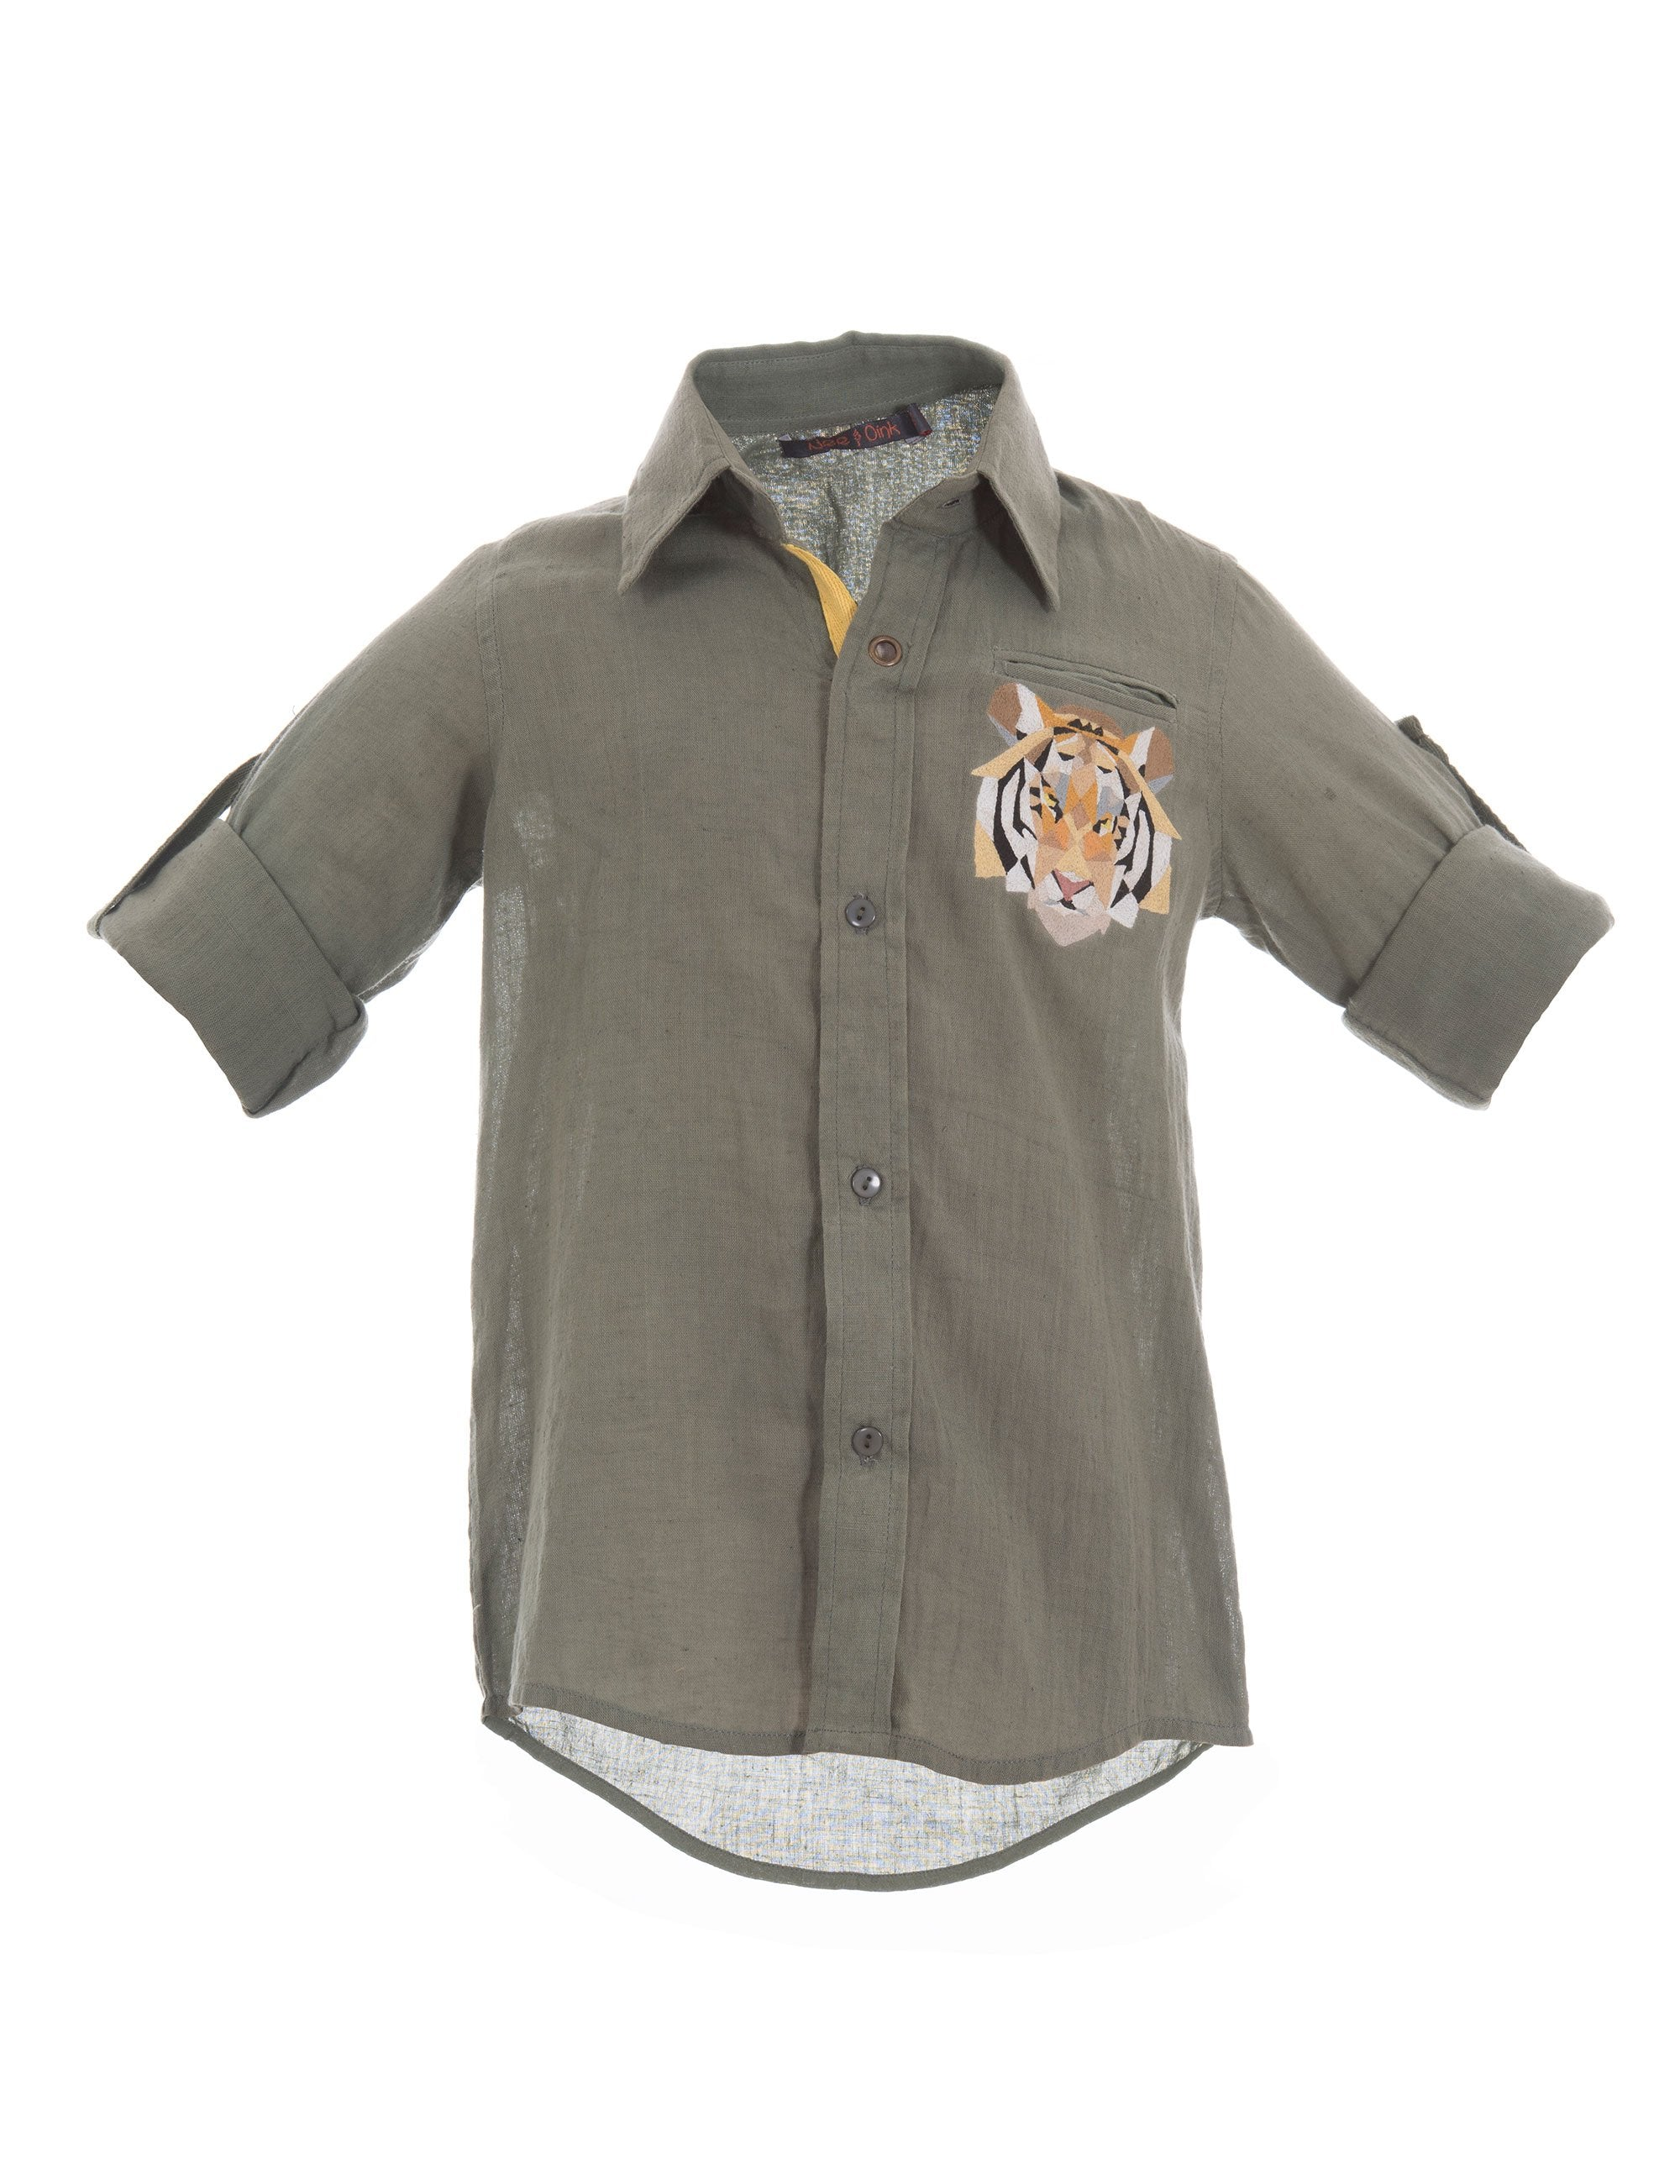 Safari Shirt in Green for Boys